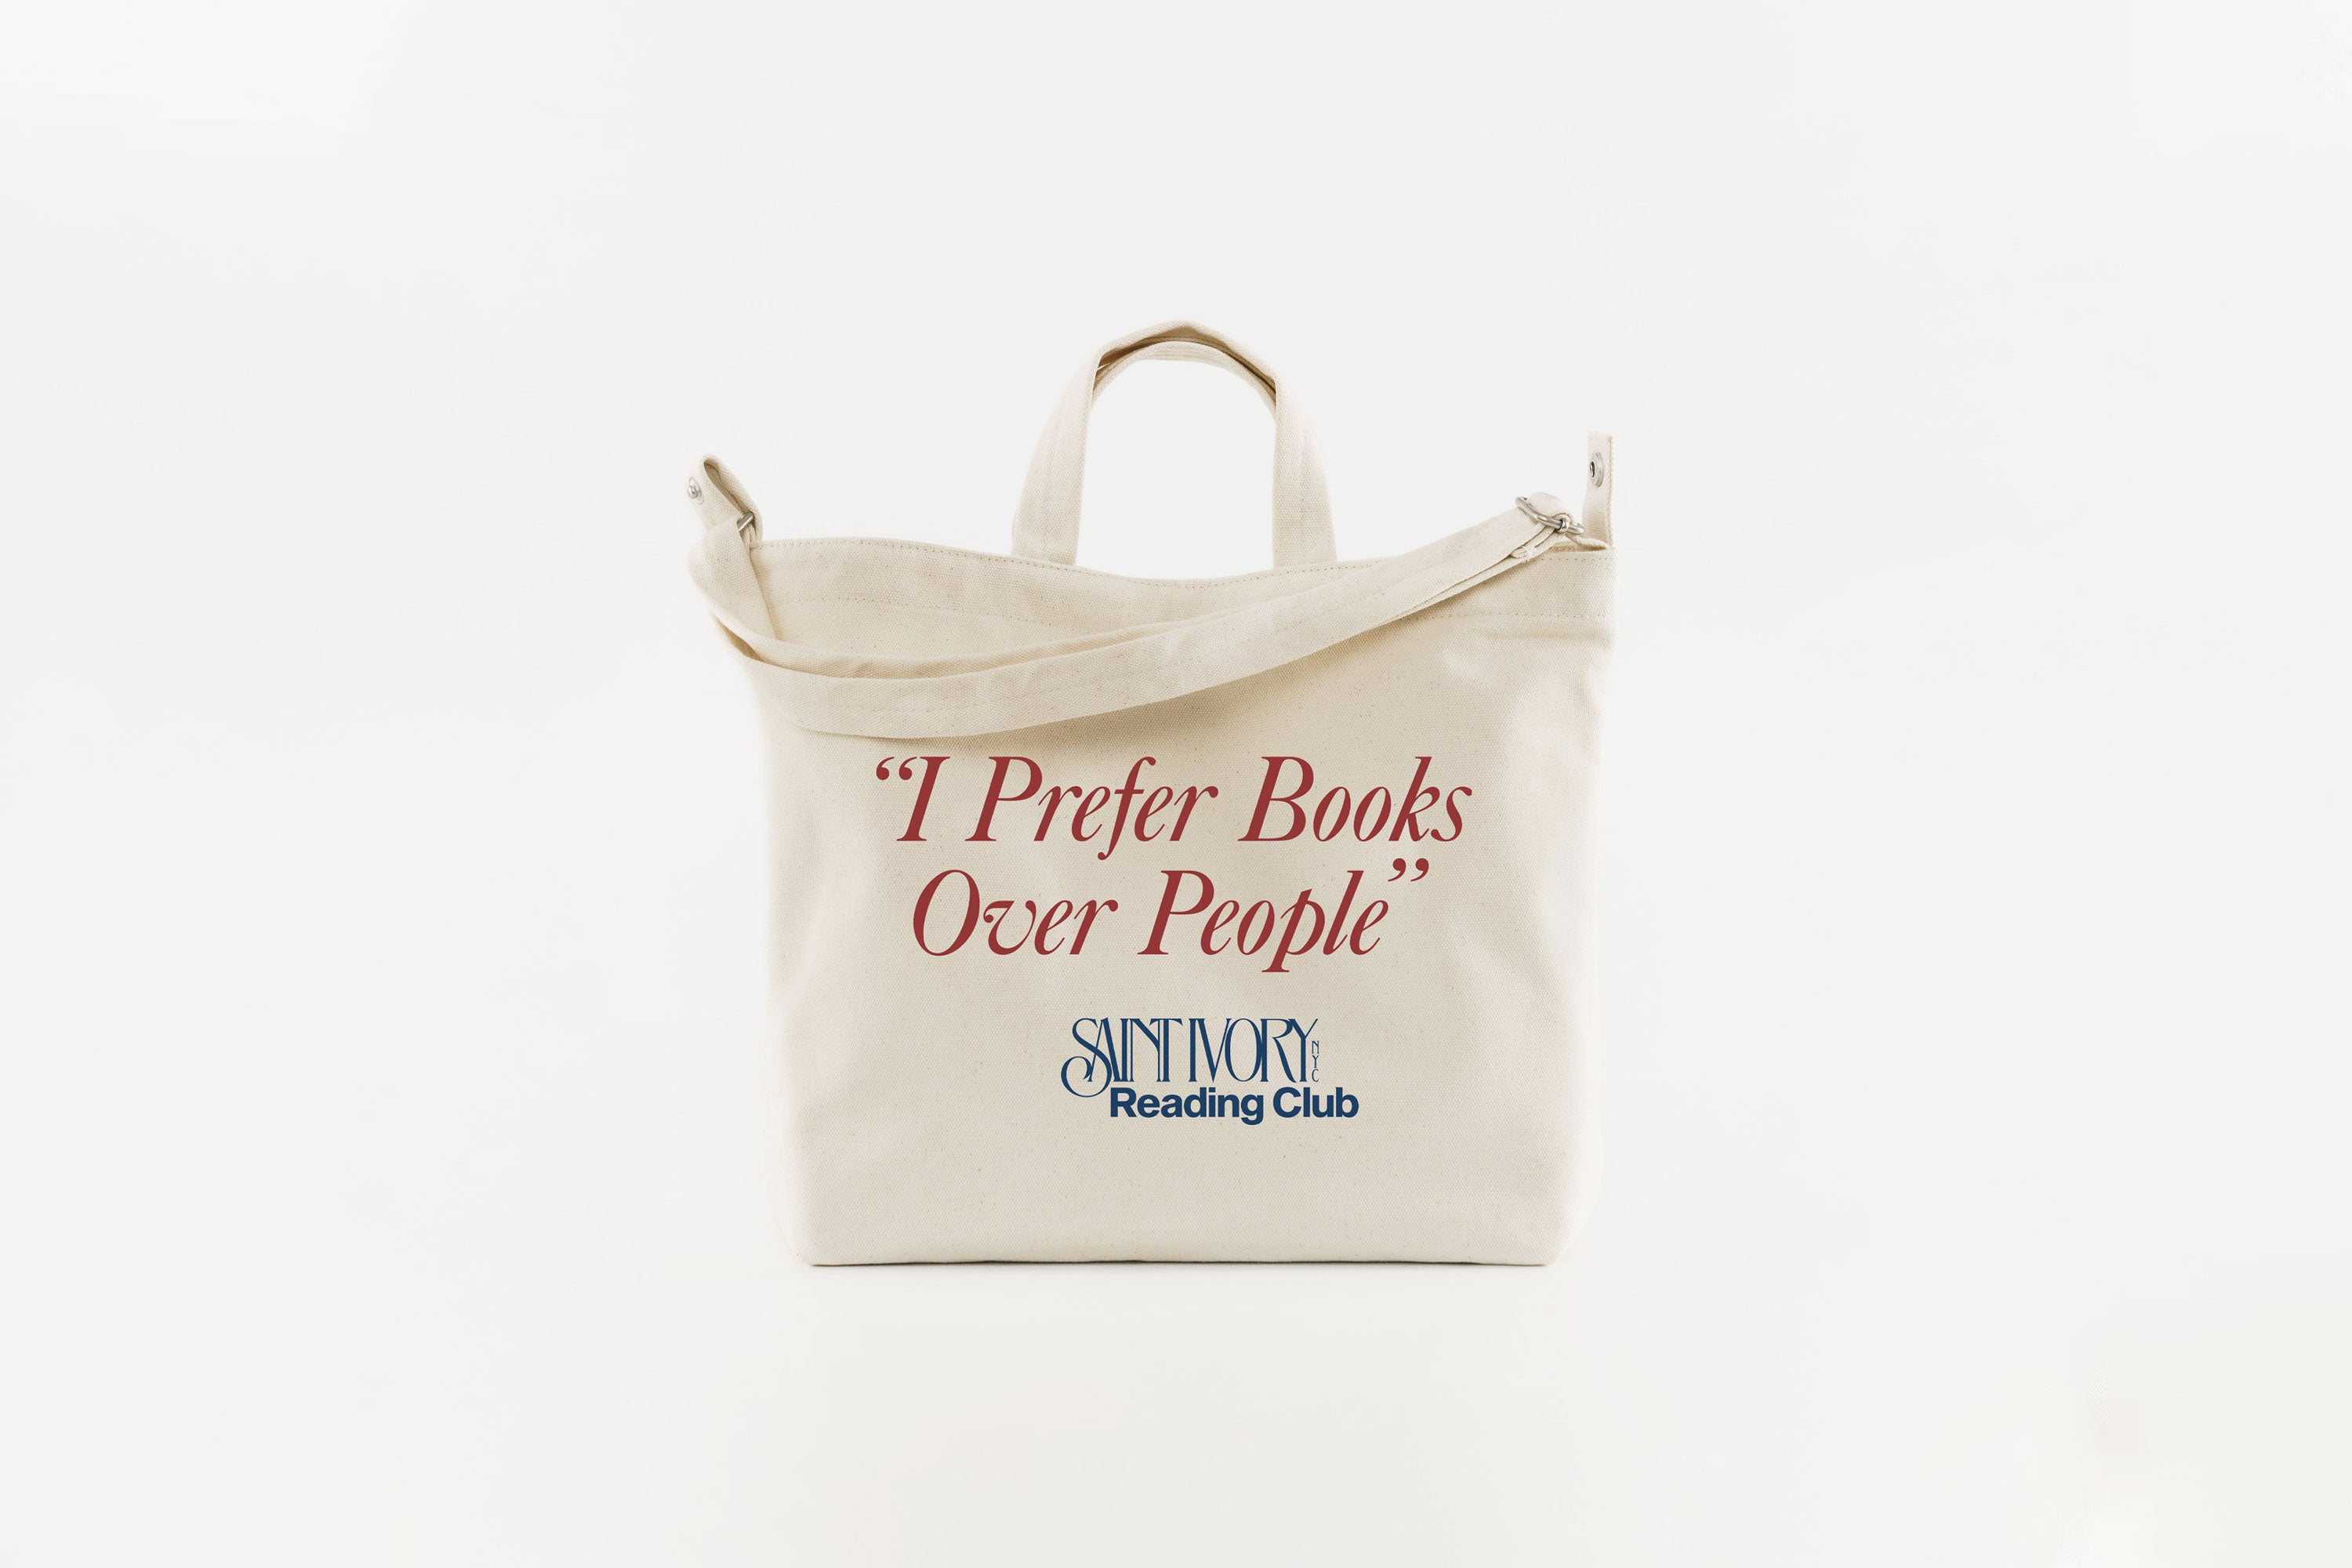 Saint Ivory Reading Club Tote Bag